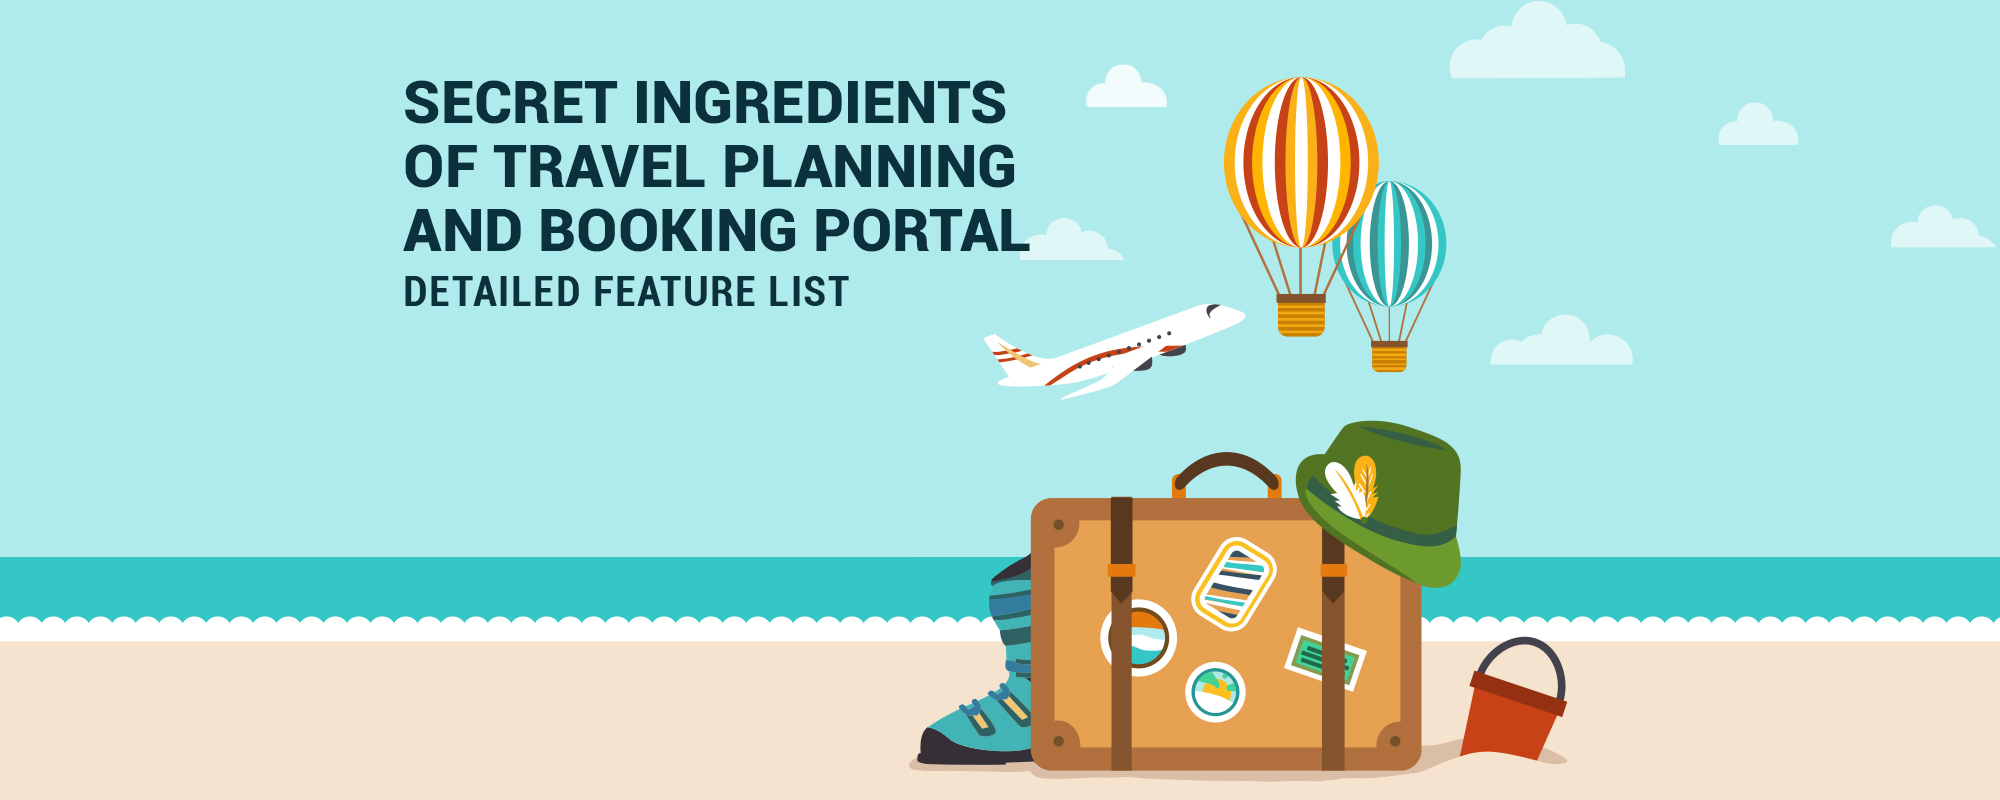 Business Analysis & Features to Build Travel Activity Booking Portal